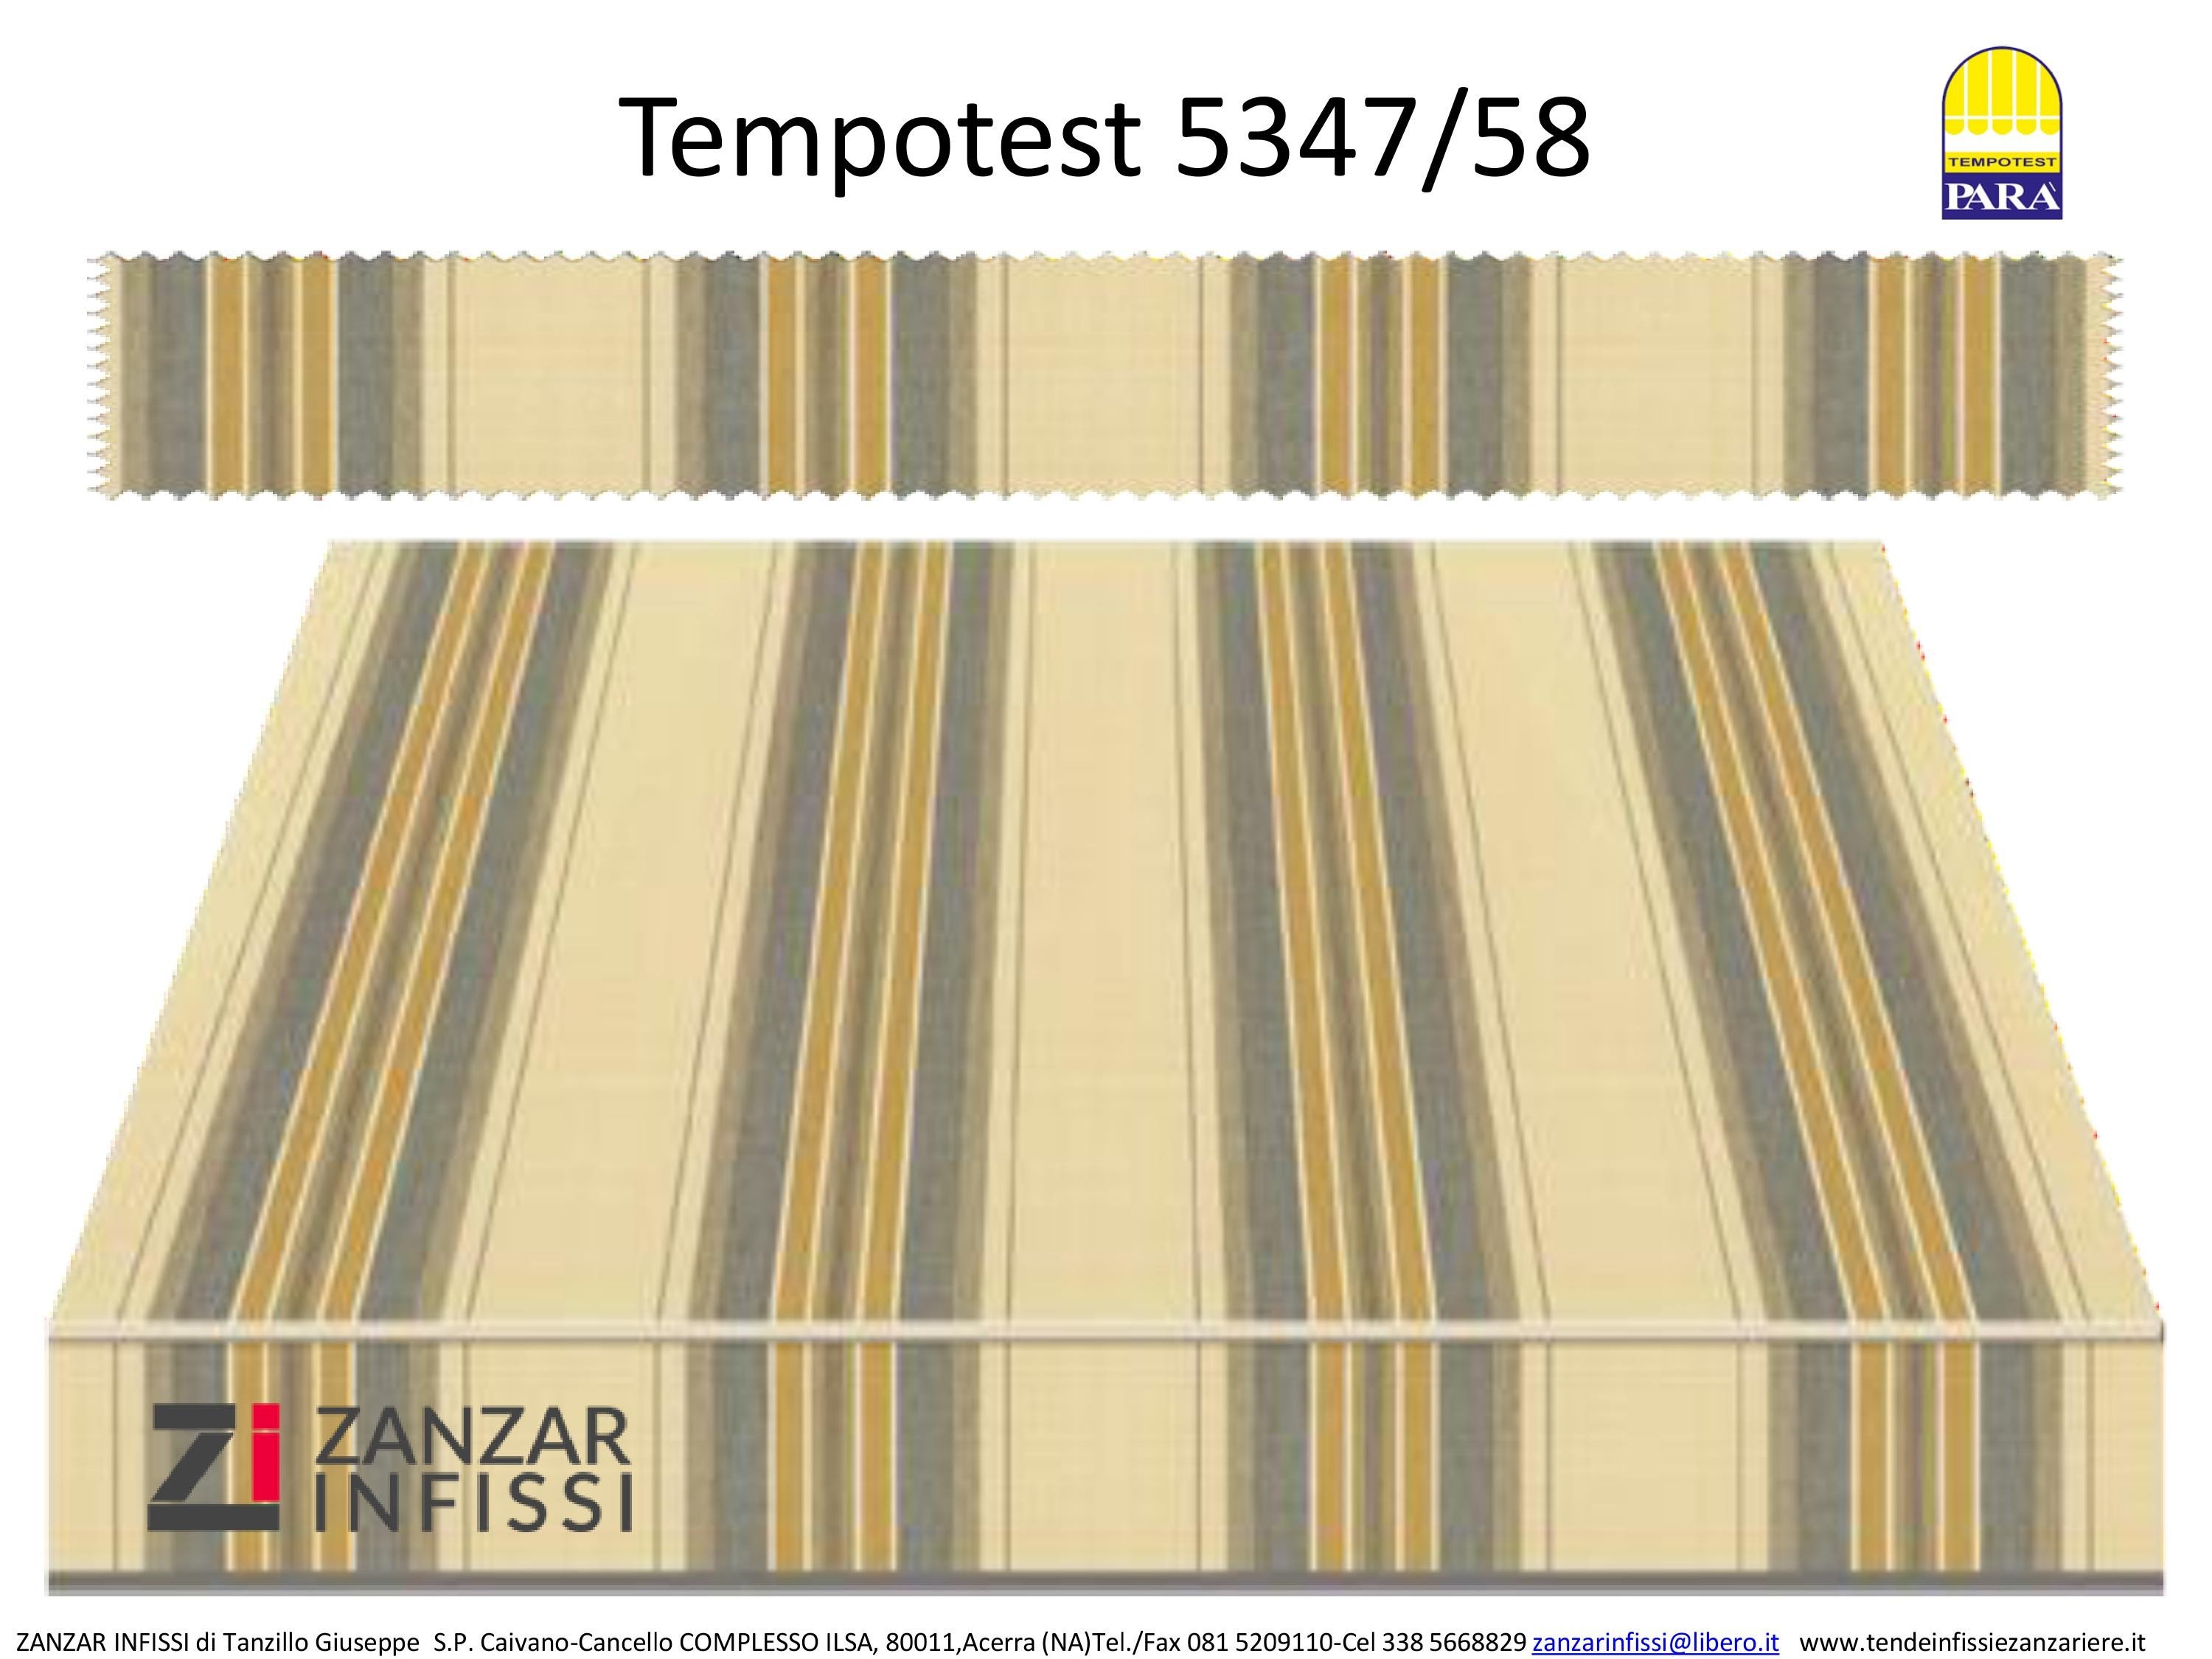 Tempotest 5347/58